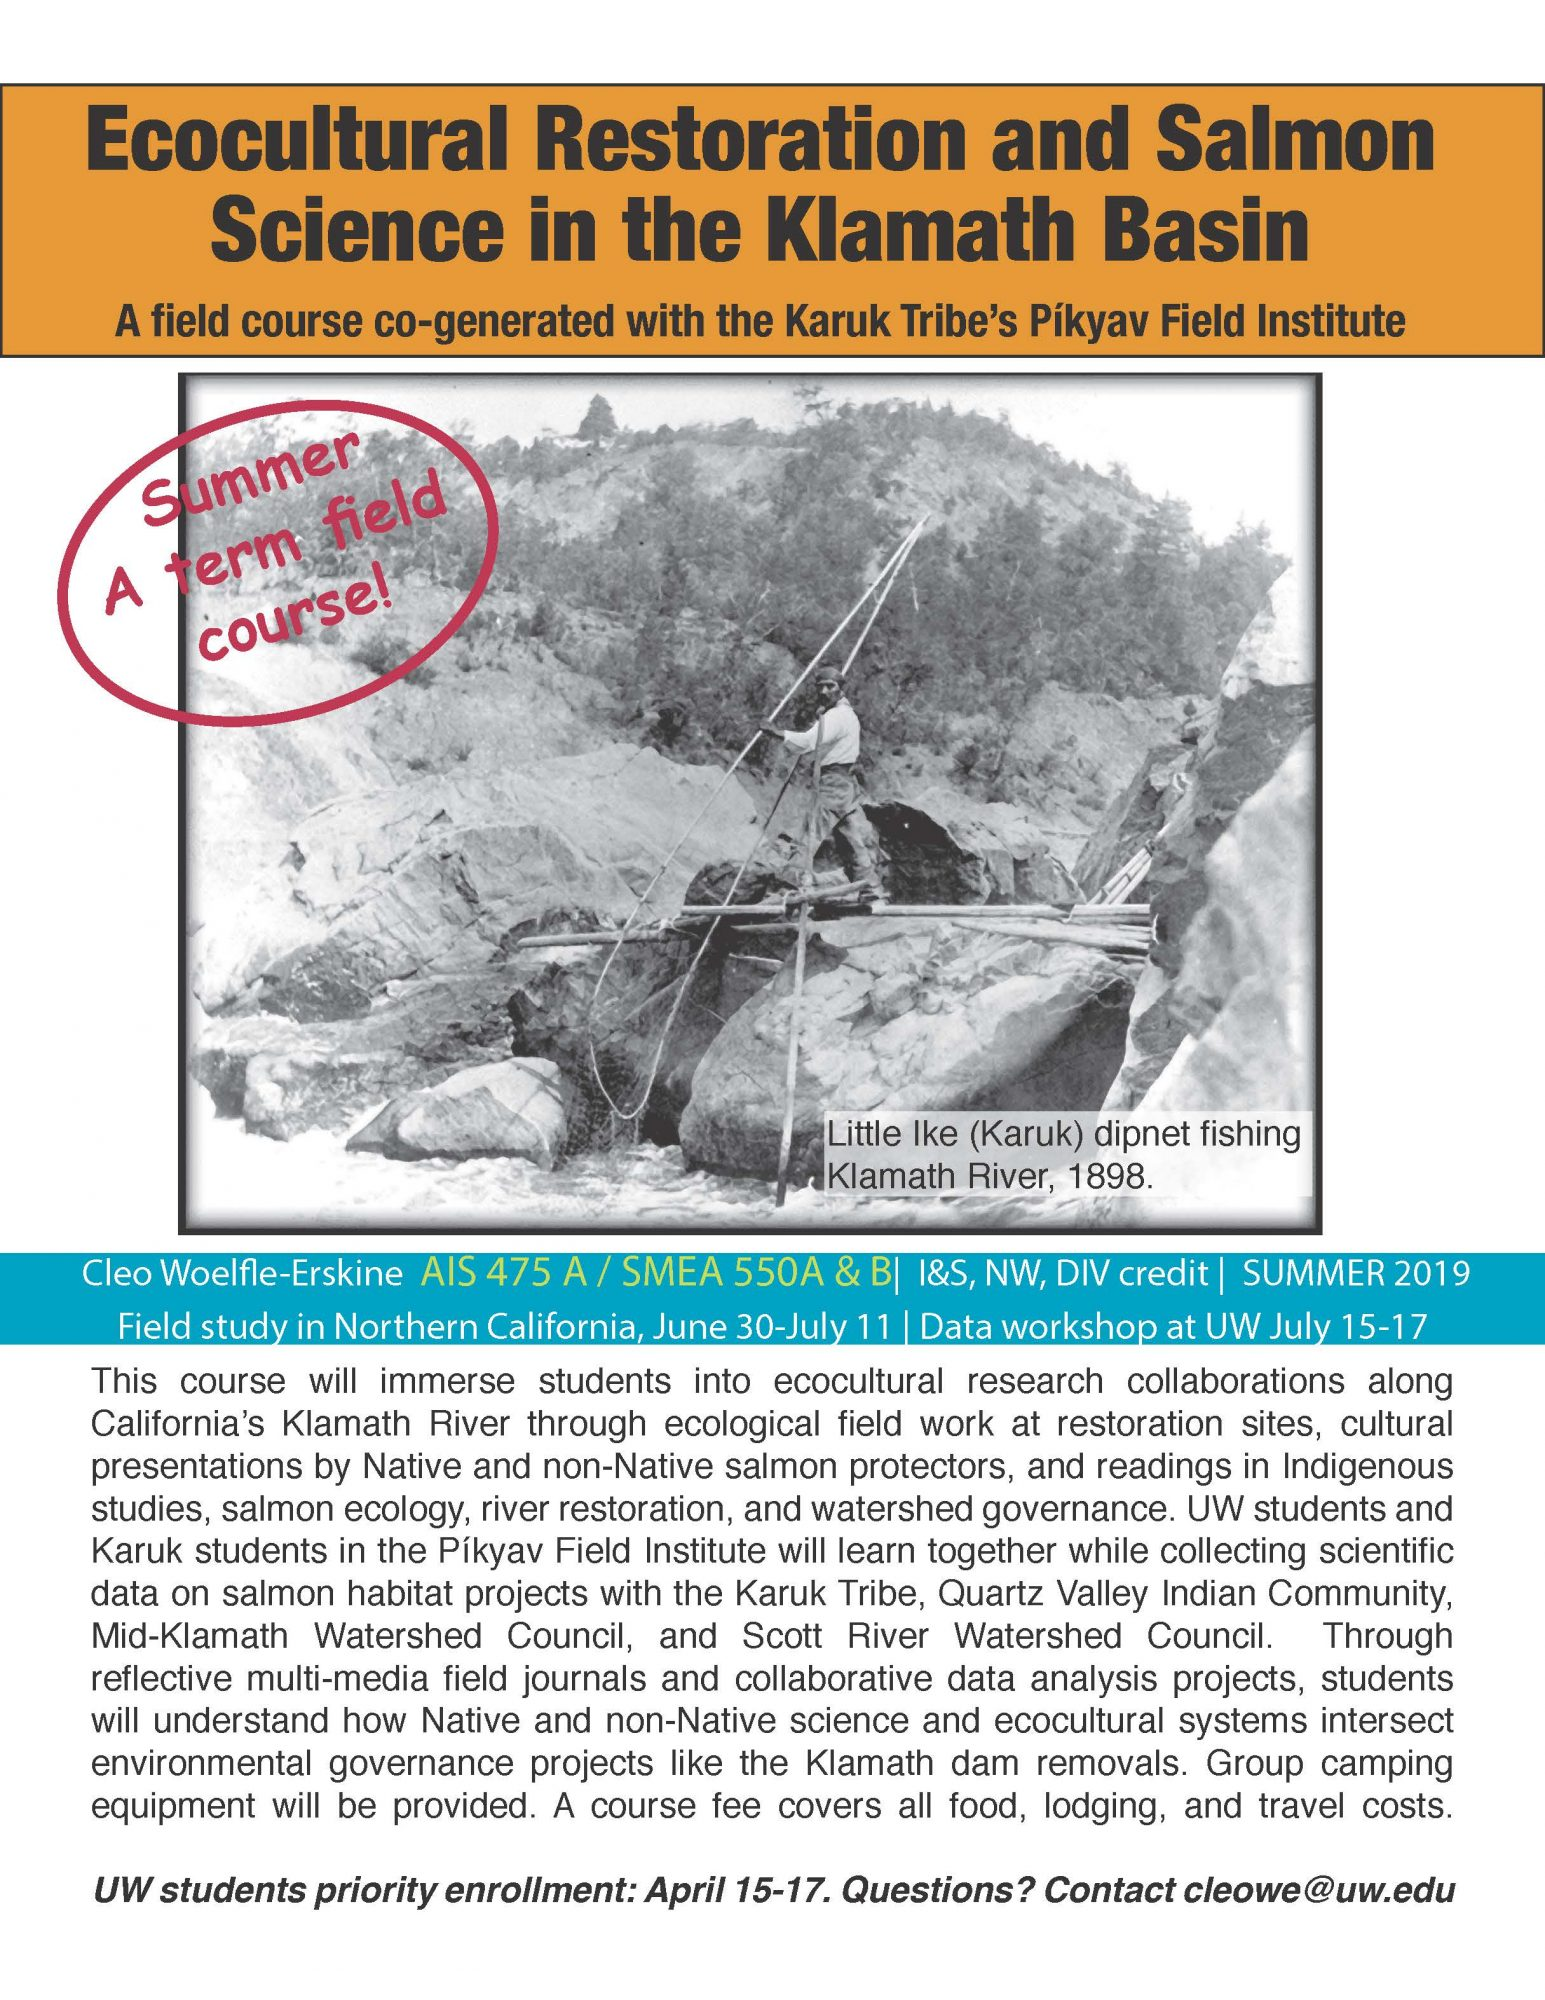 course flyer for Ecocultural Restoration and Salmon Science in the Klamath Basin